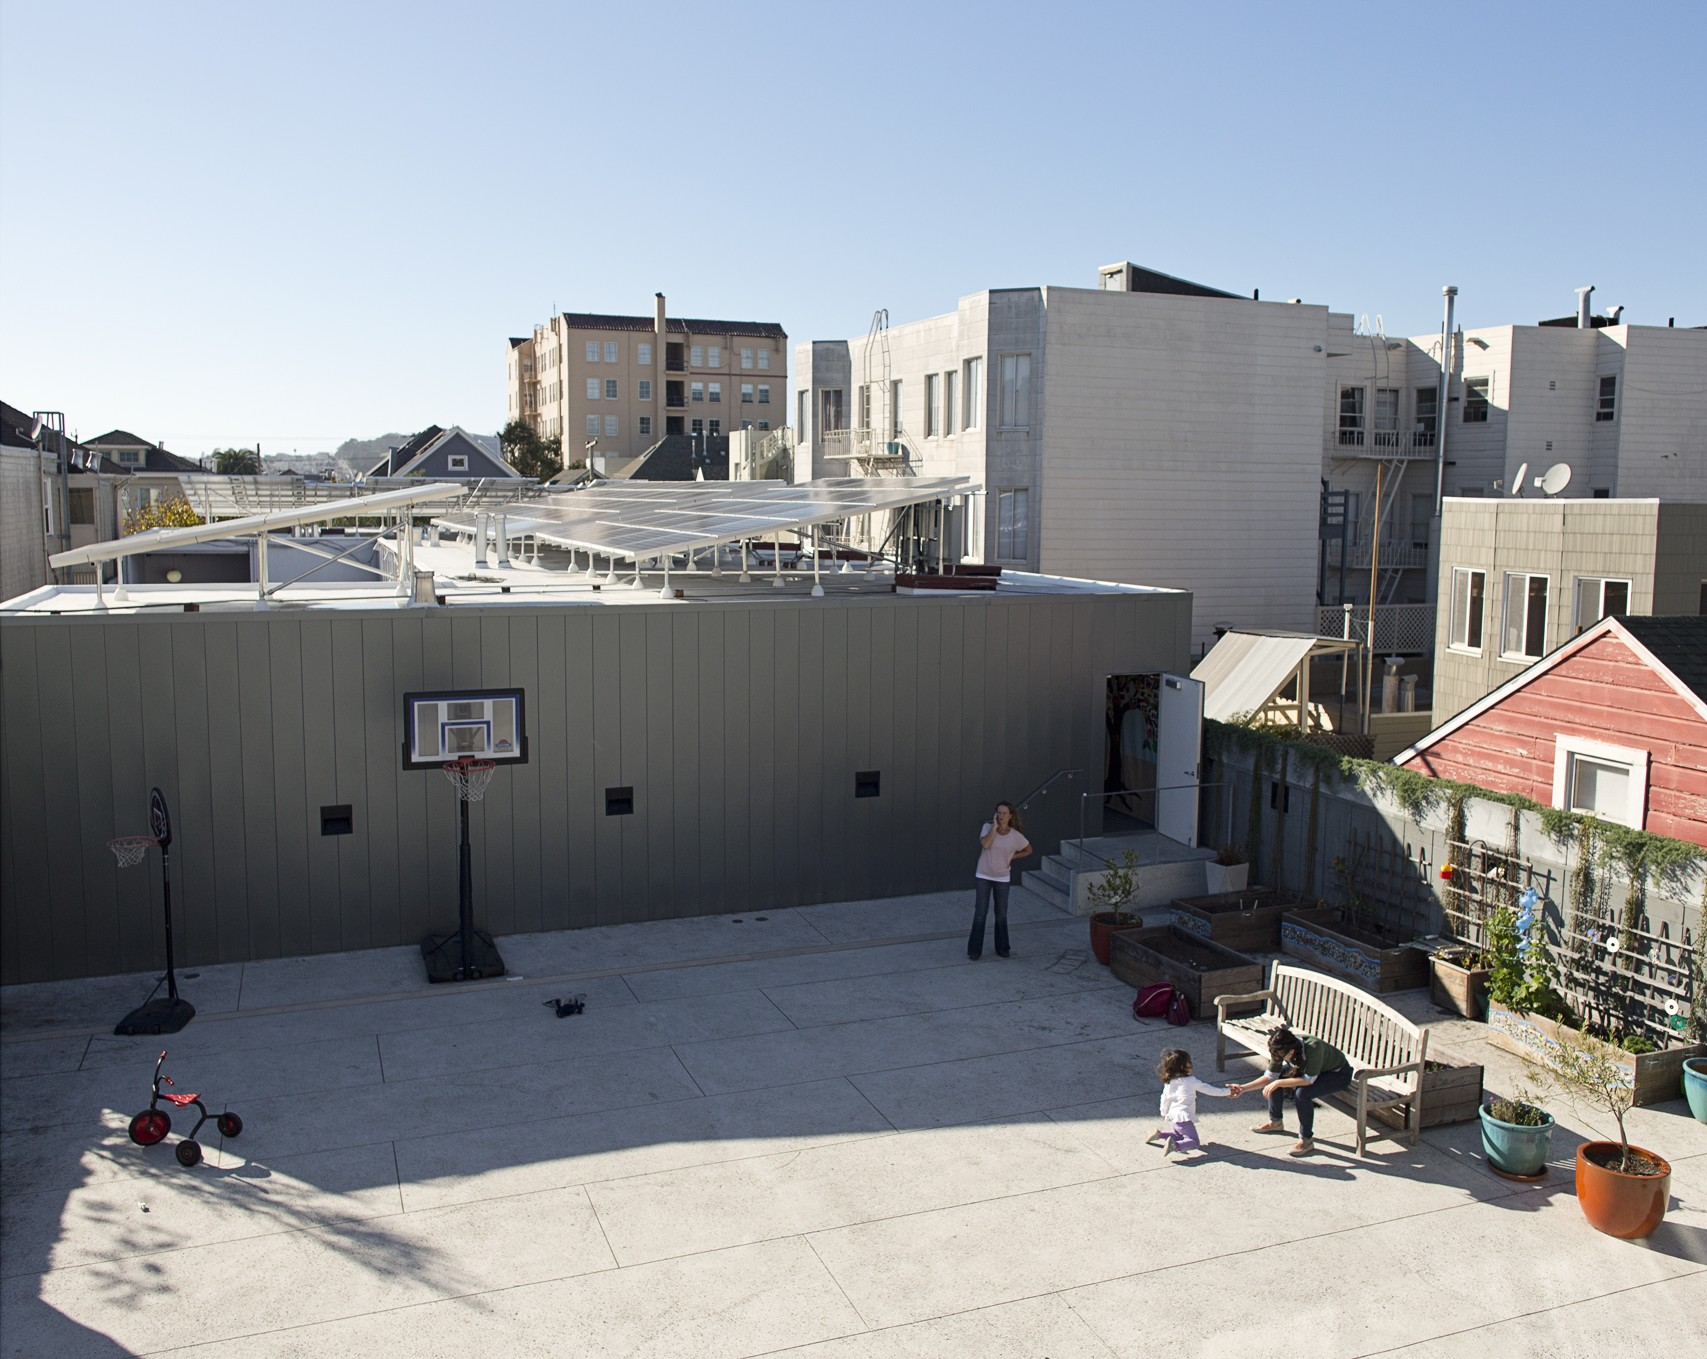 CongregationBethSholomSolarPanels2_RichmondDistrict_SFCA_October2015